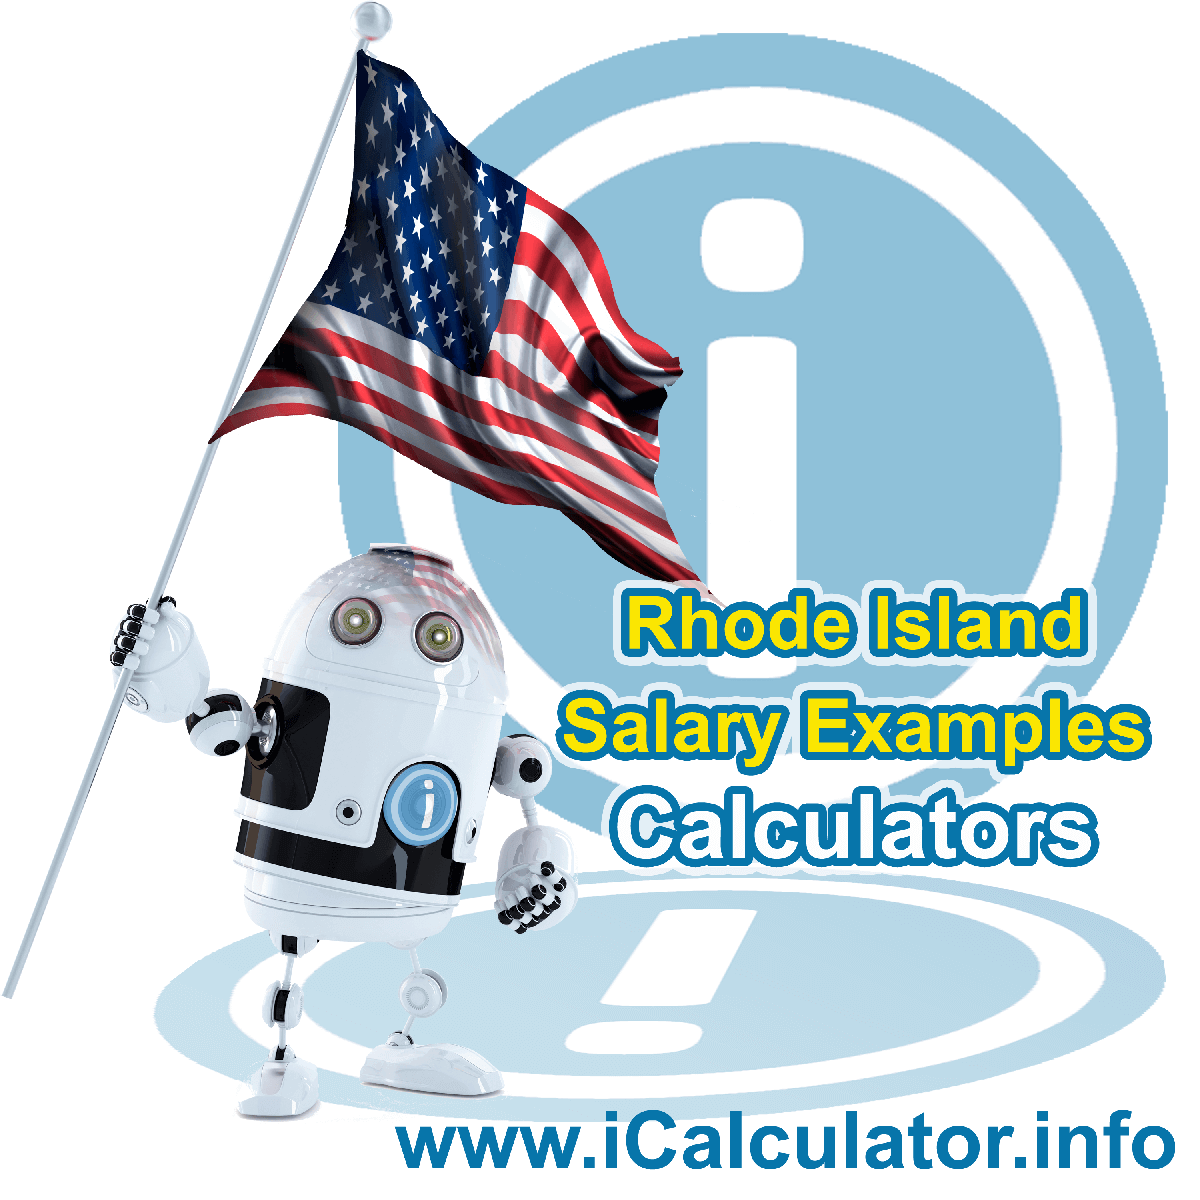 Rhode Island Salary Example for $60.00 in 2020 | iCalculator | $60.00 salary example for employee and employer paying Rhode Island State tincome taxes. Detailed salary after tax calculation including Rhode Island State Tax, Federal State Tax, Medicare Deductions, Social Security, Capital Gains and other income tax and salary deductions complete with supporting Rhode Island state tax tables